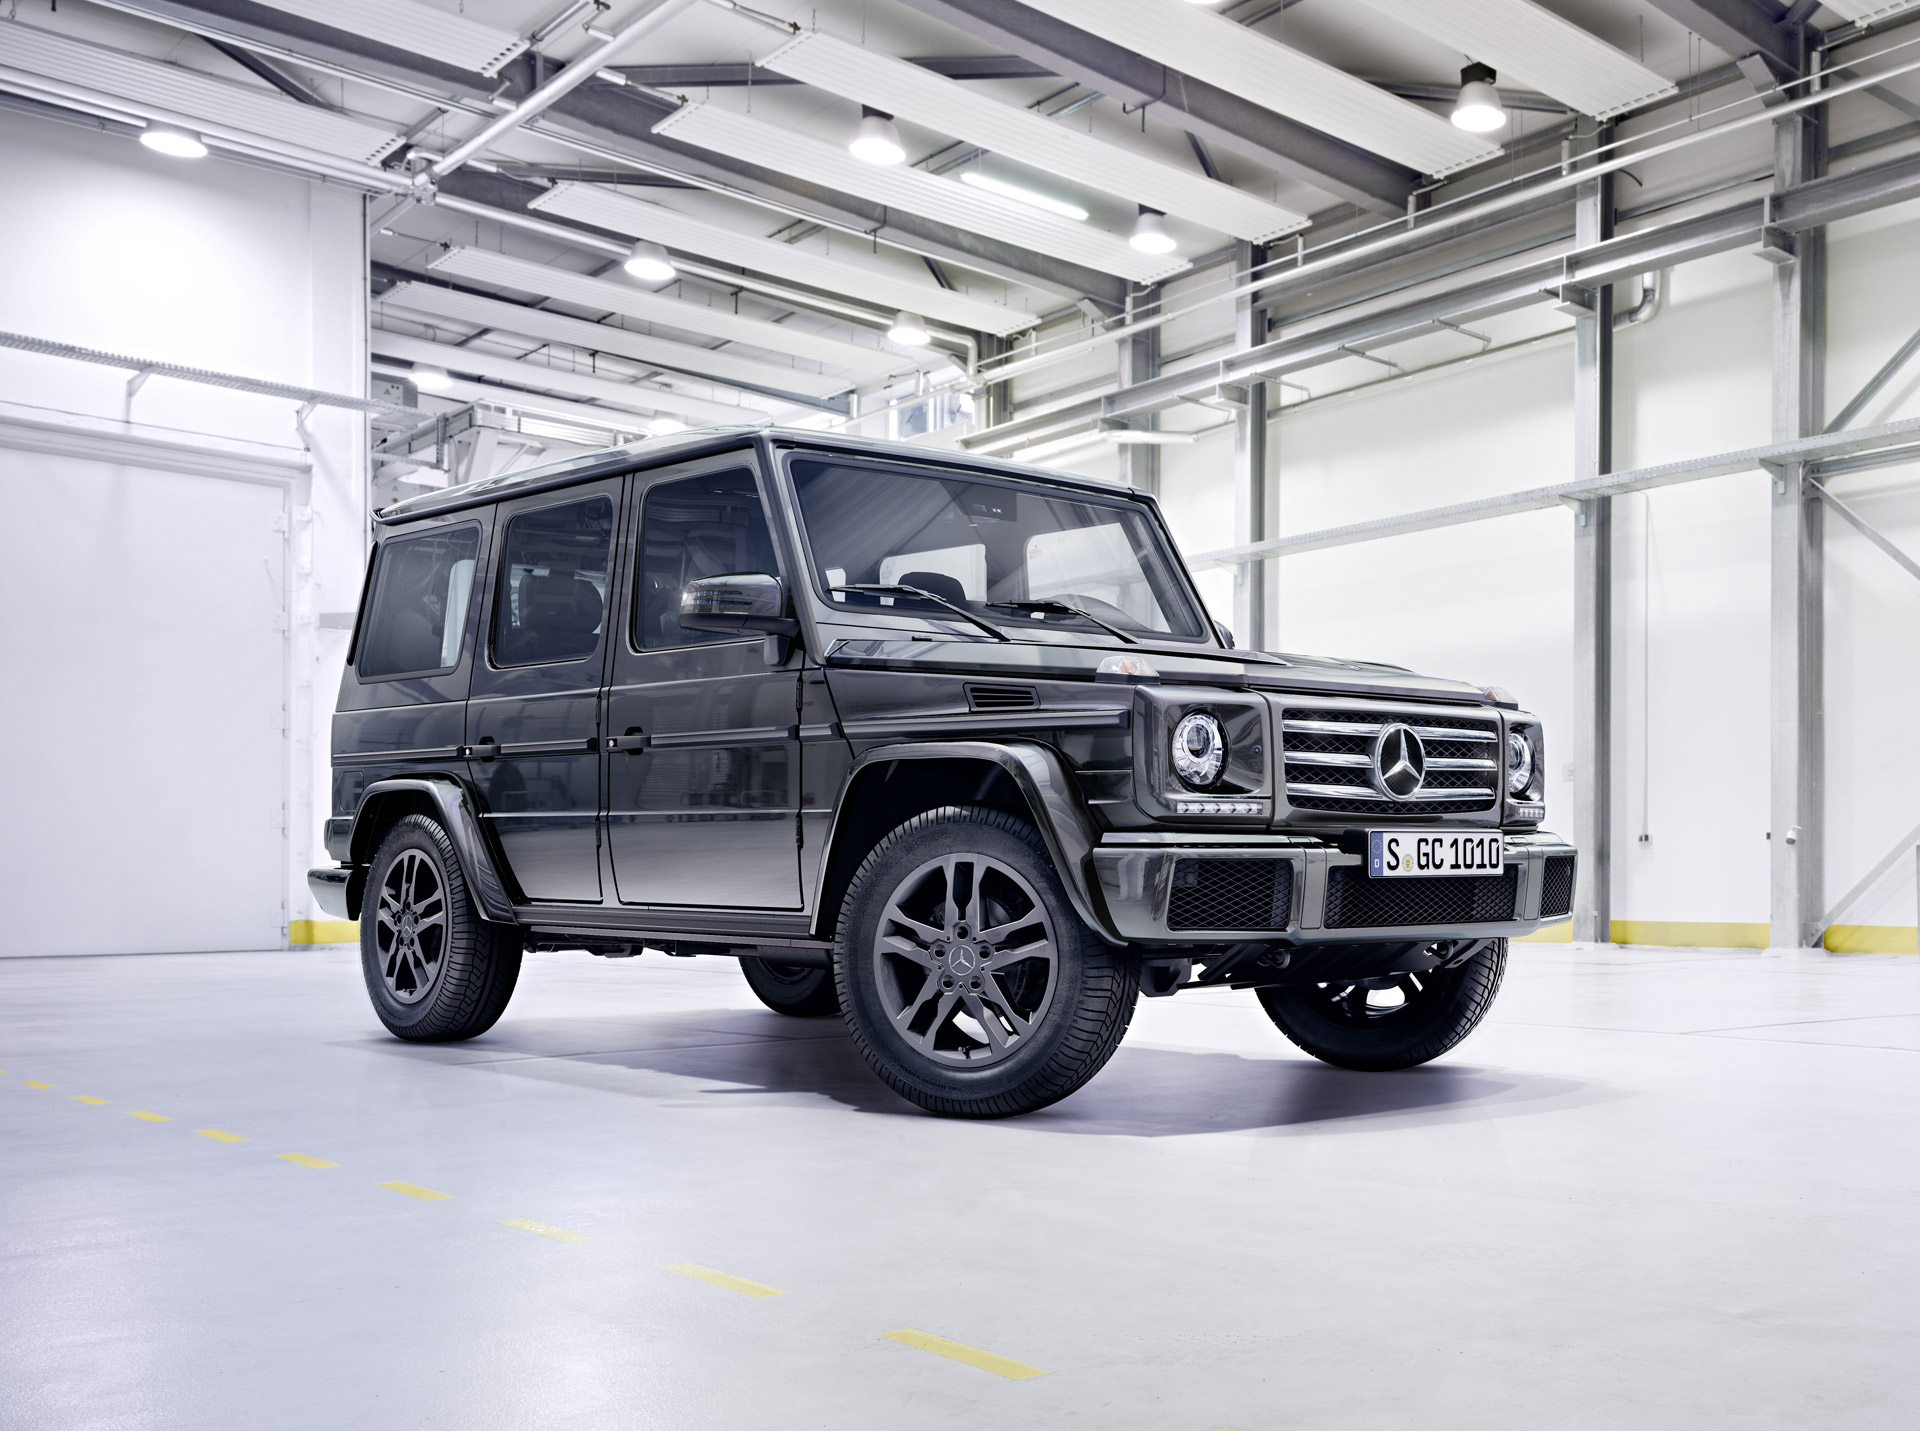 2016 mercedes benz g class pricing starts at 120 825 for Mercedes benz suv g class price